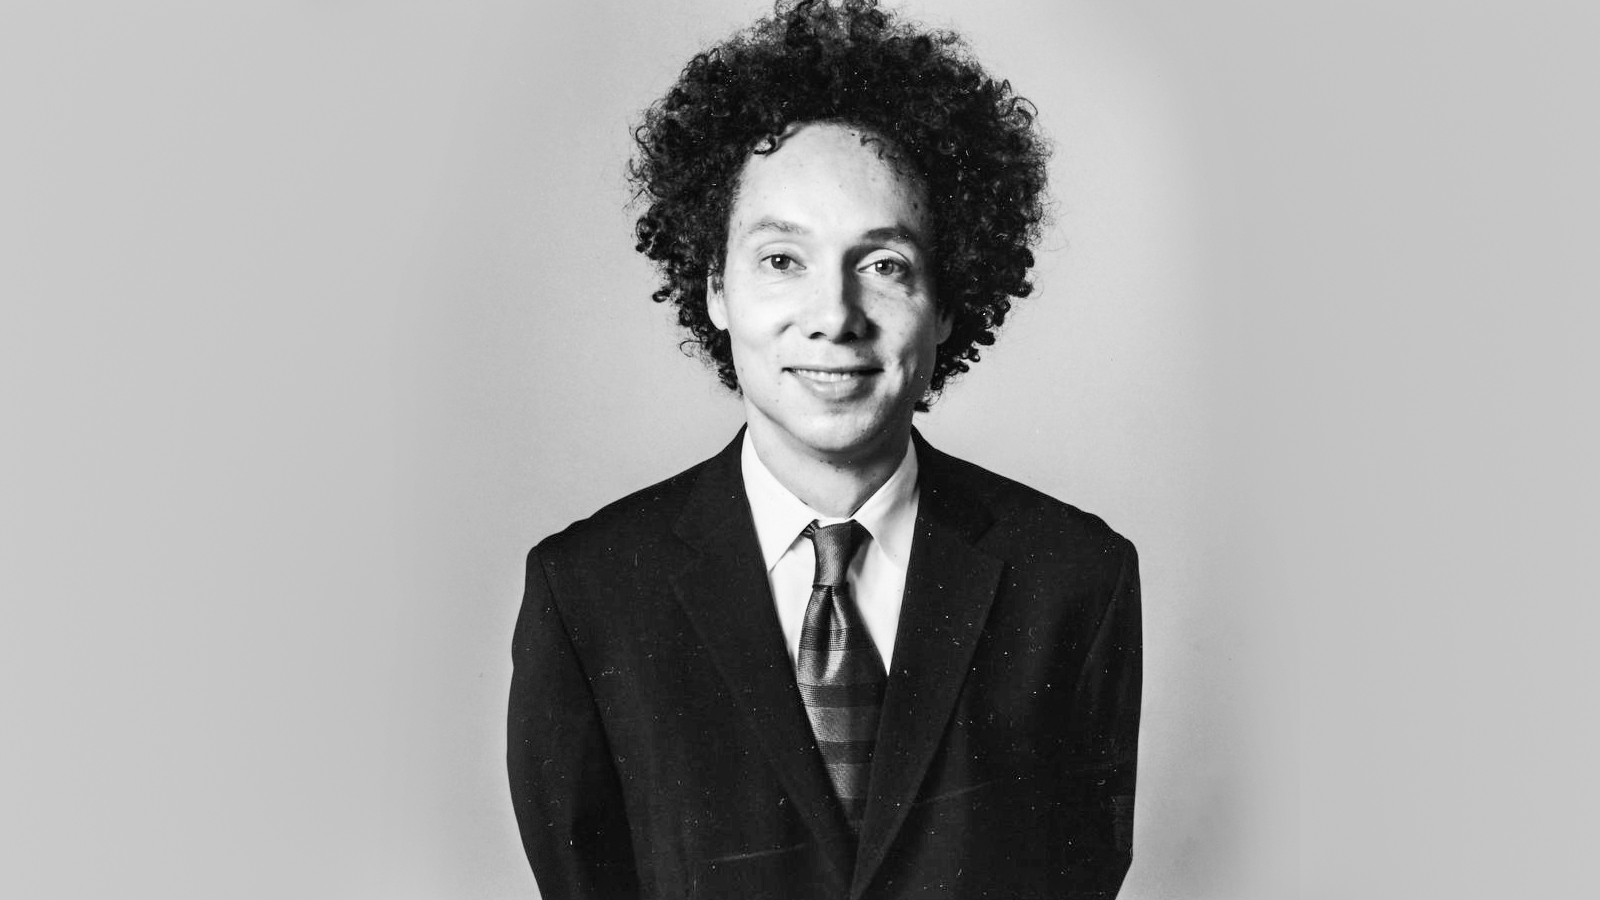 6 out-of-the-box tips from Malcolm Gladwell that can improve your career